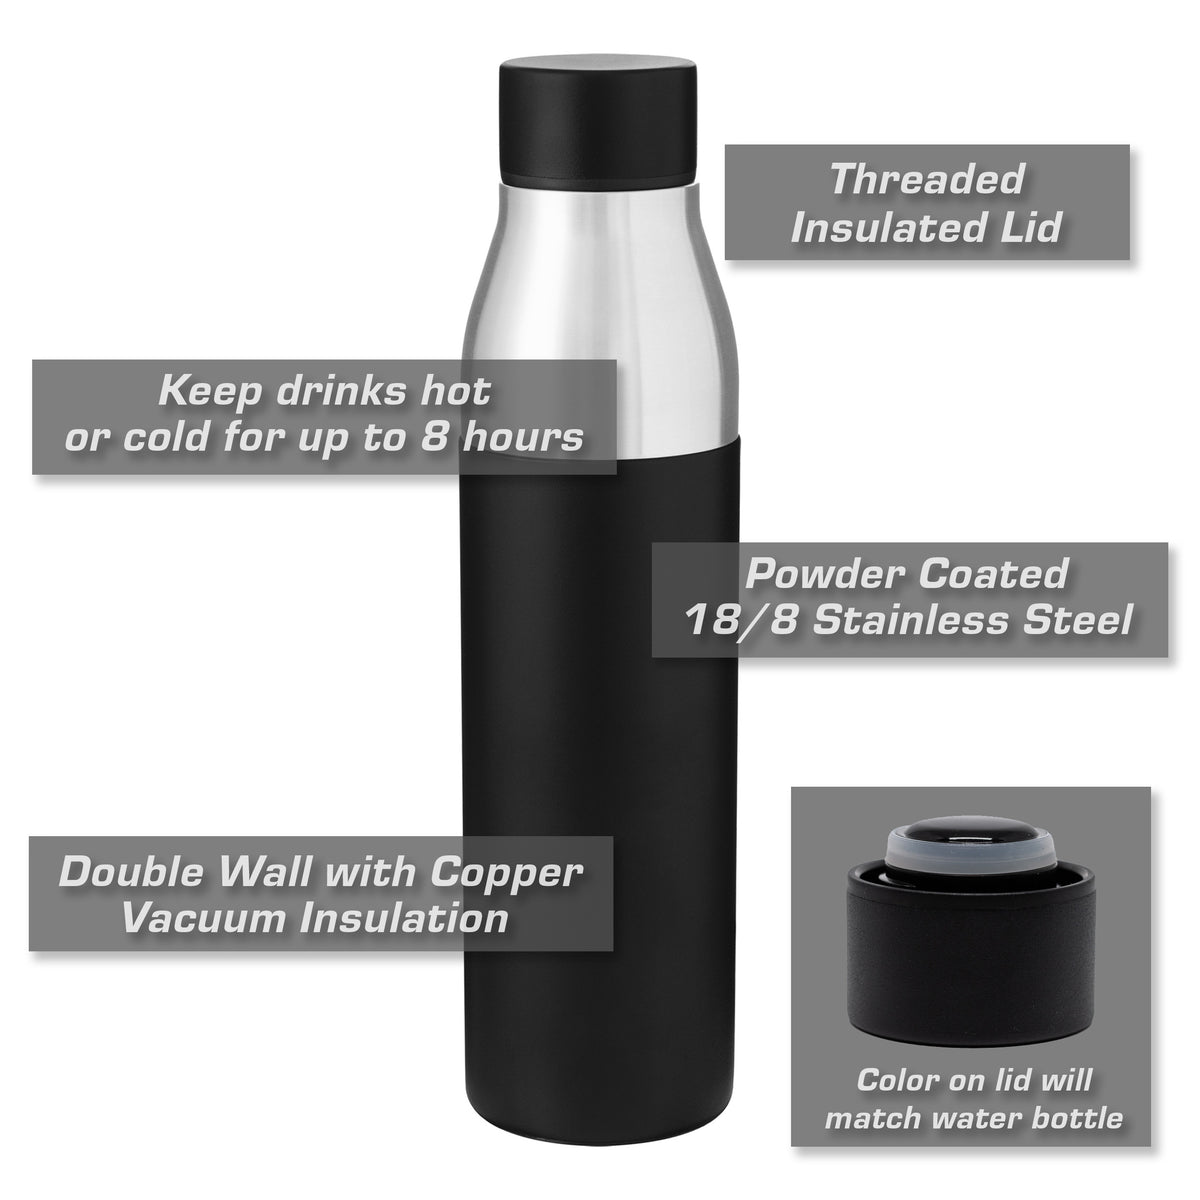 Jeep Wrangler 4 Door Side Profile Insulated Stainless Steel Water Bottle - 21 oz